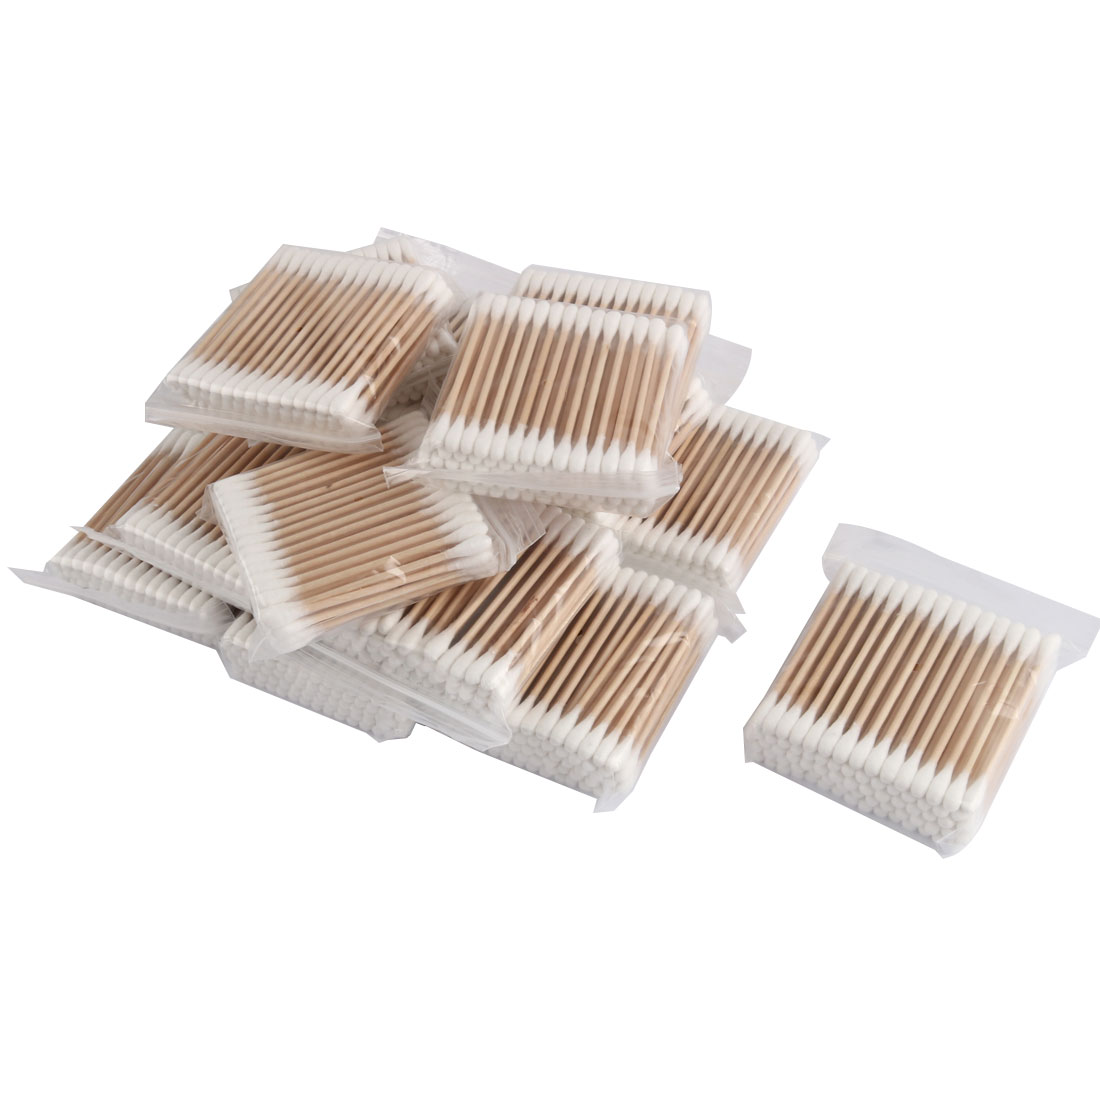 Disposable Double End Wooden Tube Cotton Swab Bud Earwax Remover 24 Packs